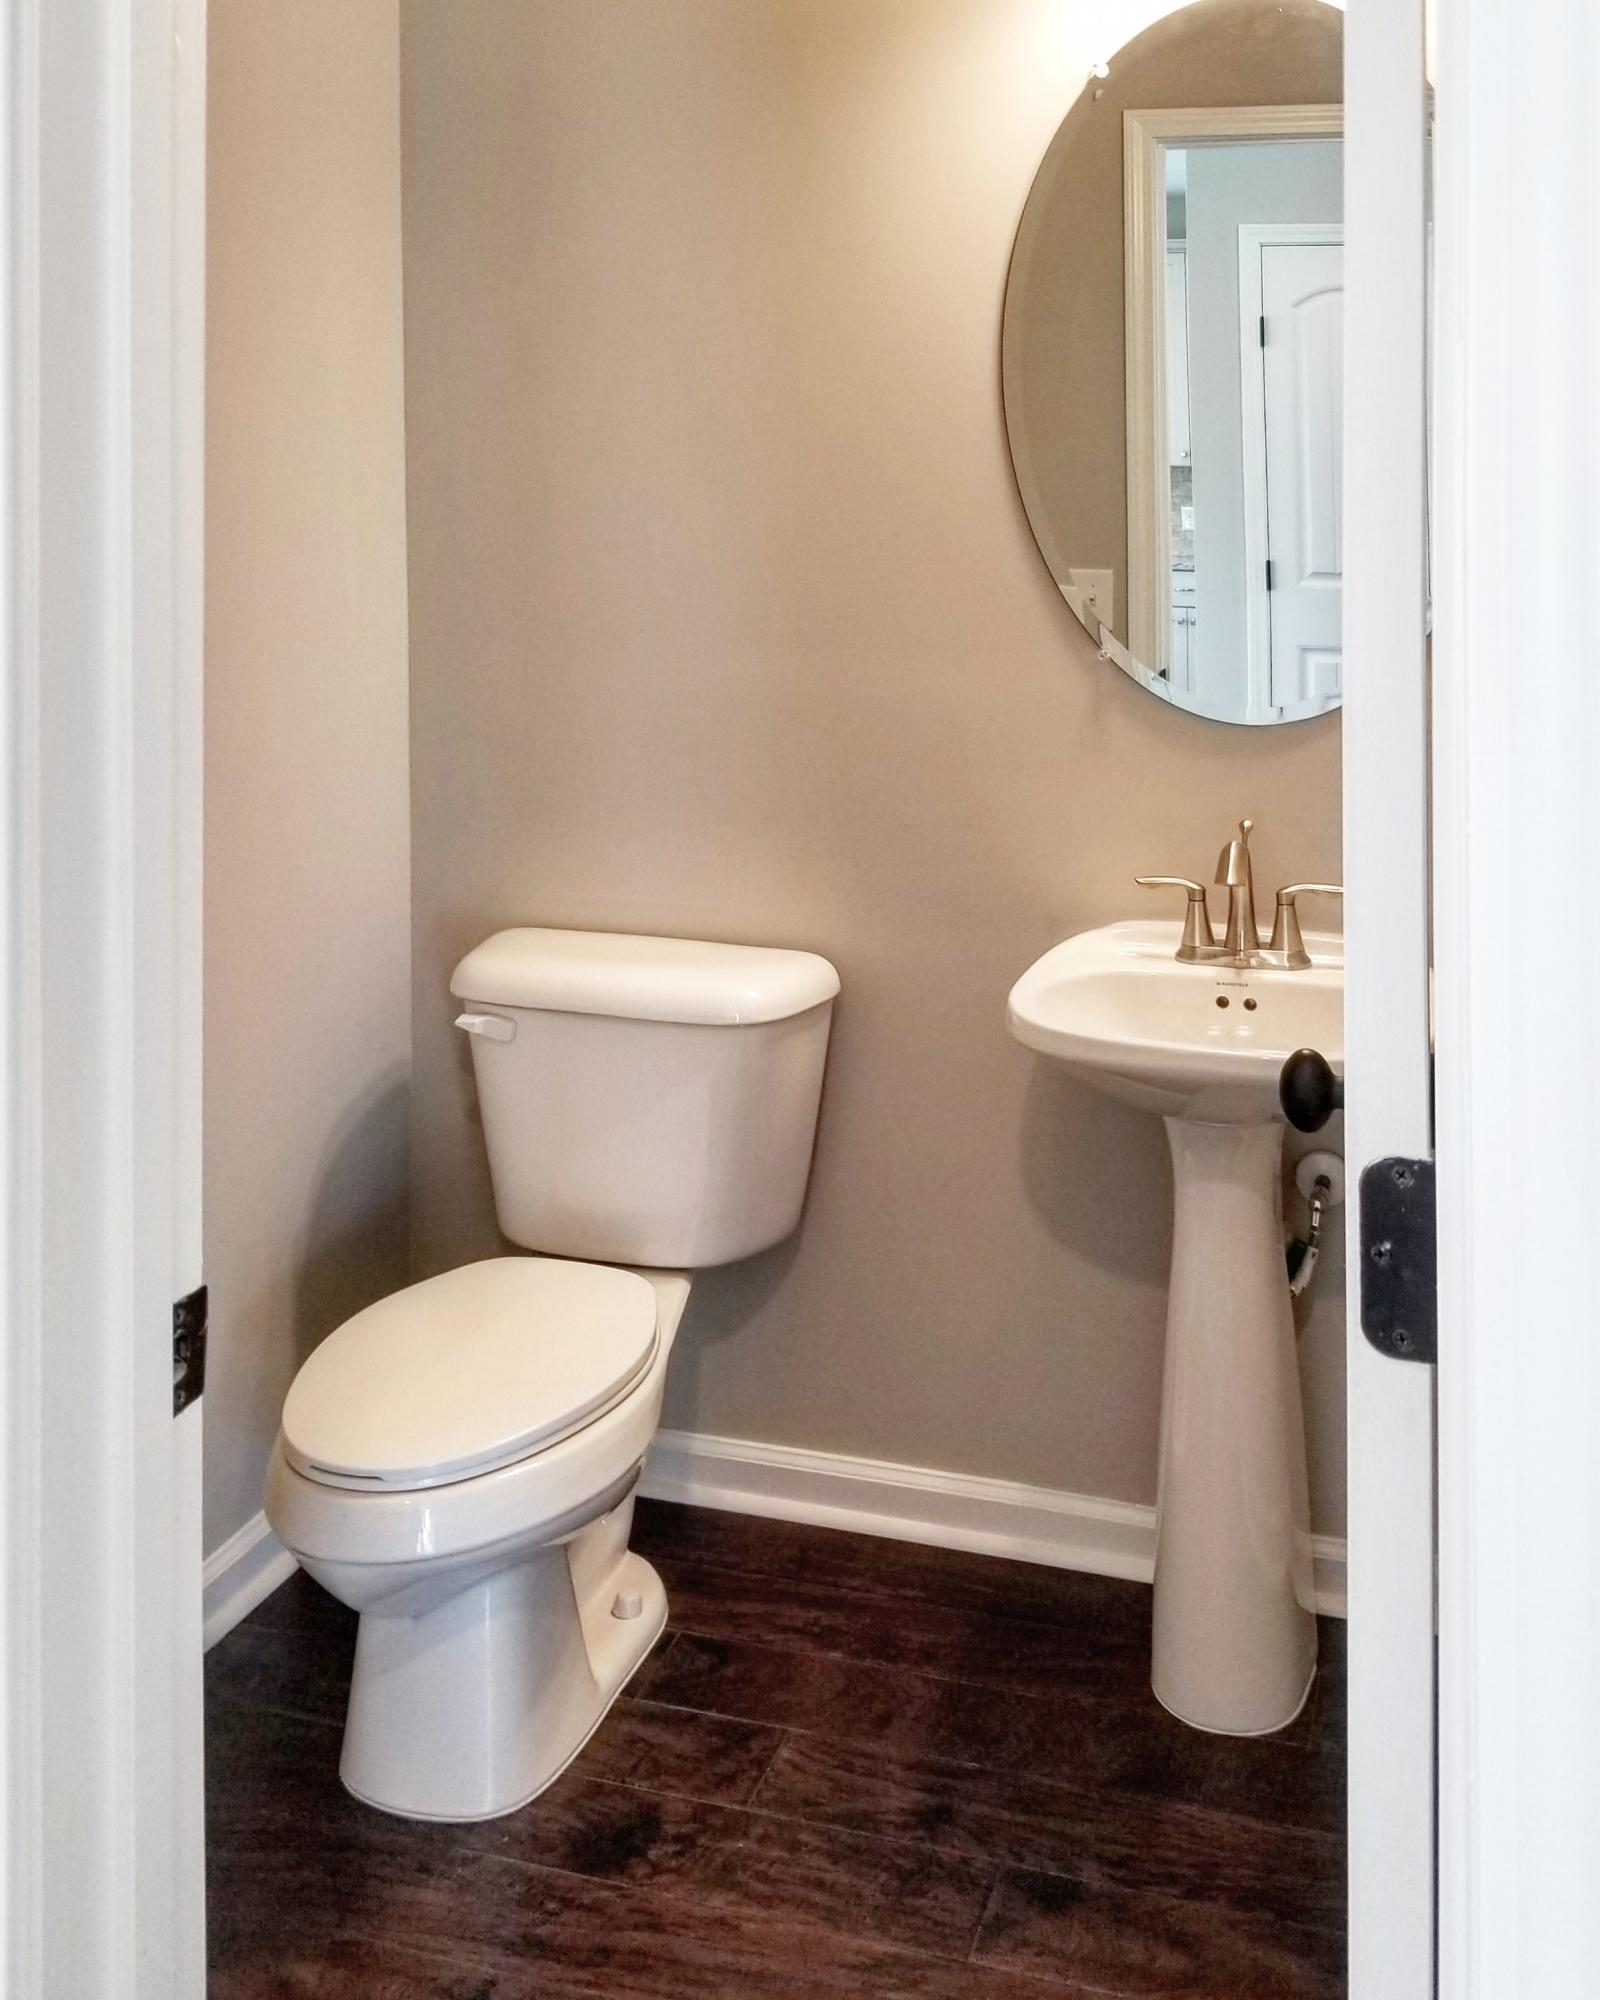 Bathroom featured in the Jasper By Konter Quality Homes in Savannah, GA